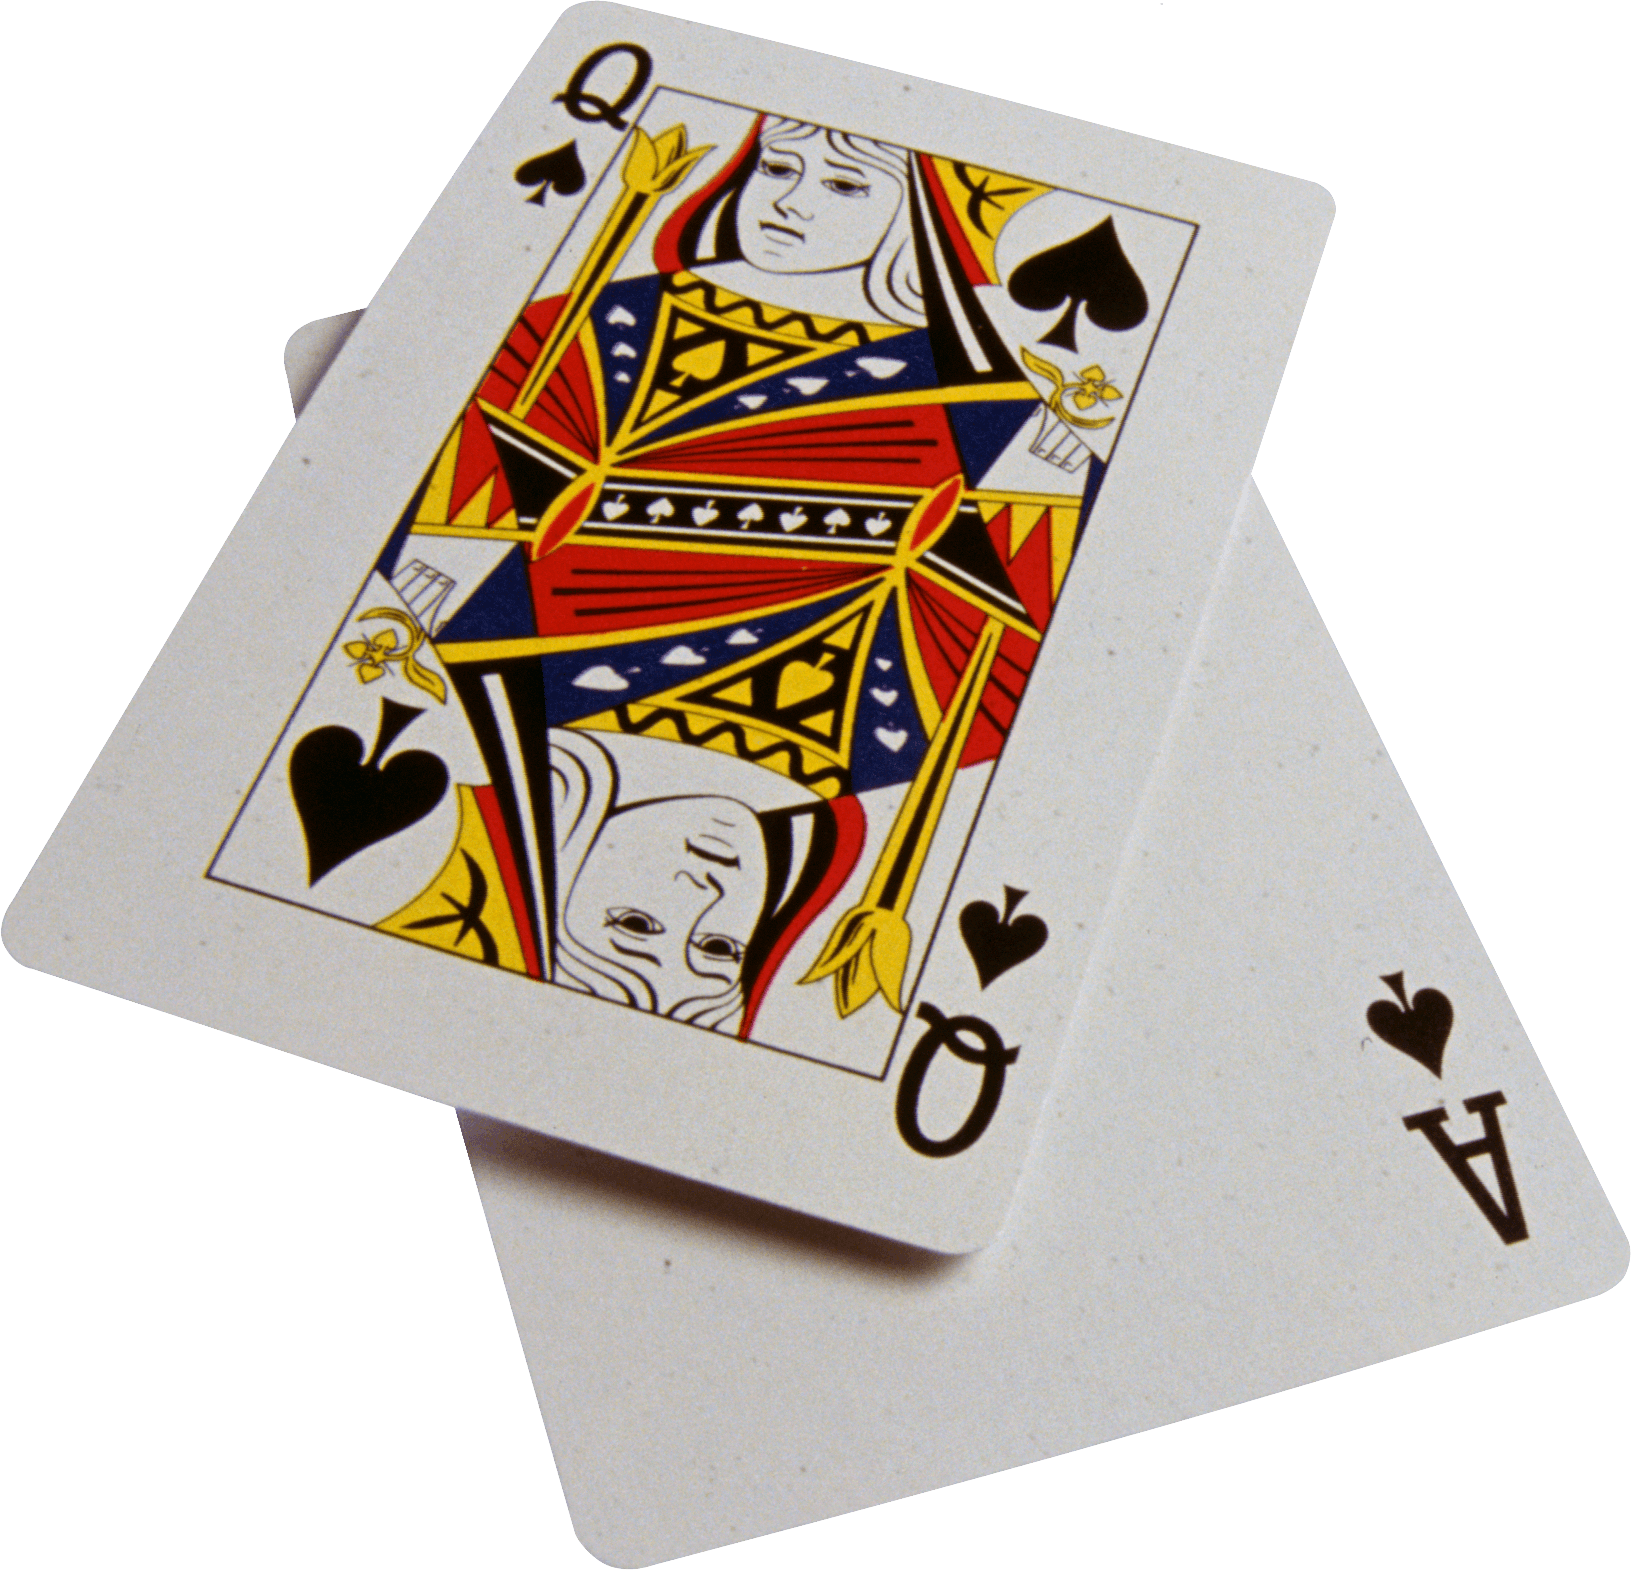 download playing cards png png image pngimg #22397